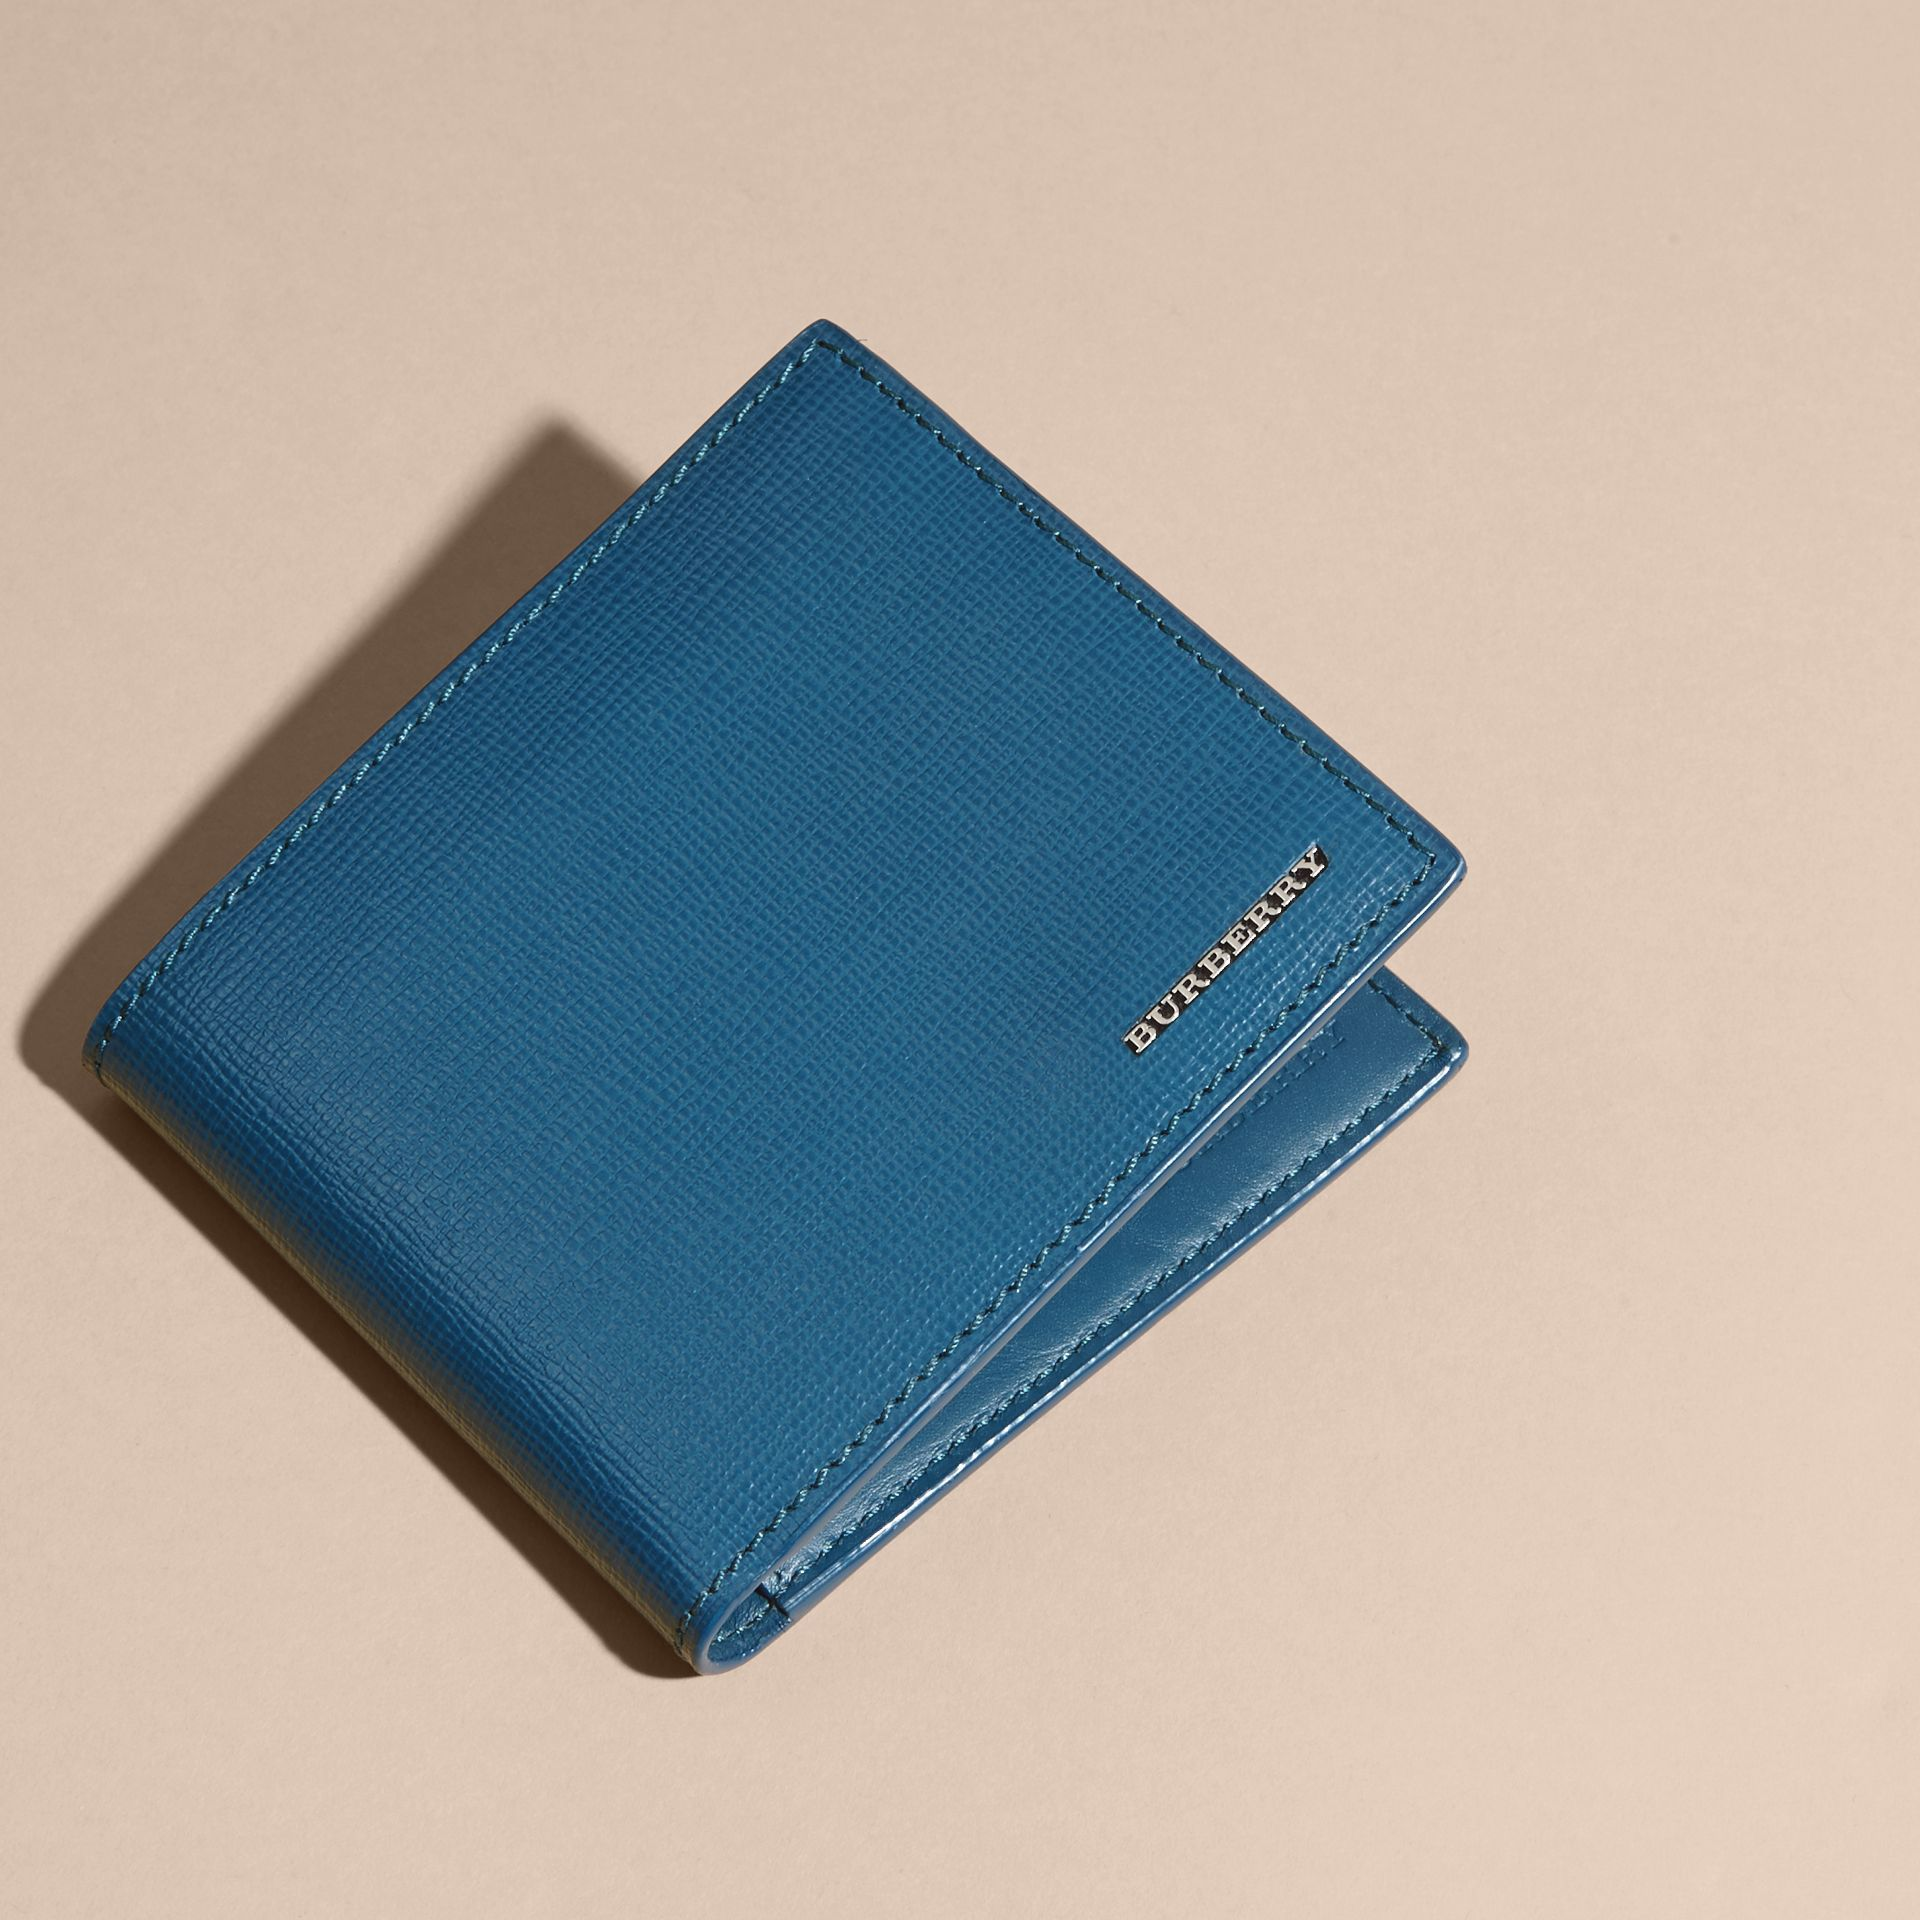 Mineral blue London Leather Folding Wallet Mineral Blue - gallery image 7